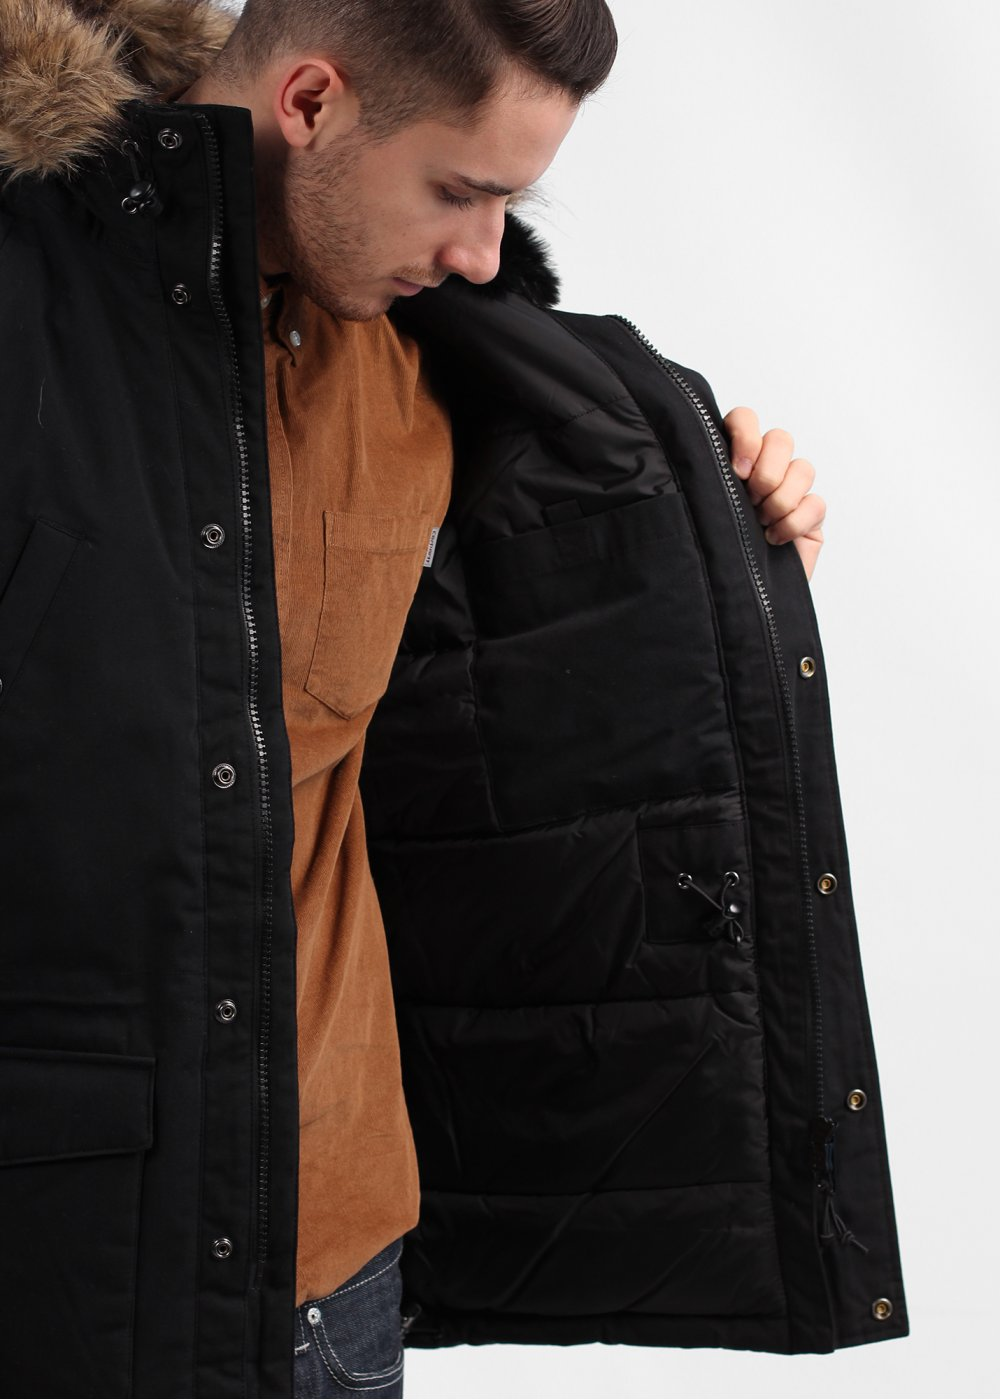 Nike Fleece Parka Carhartt Trapper Parka Coat Black